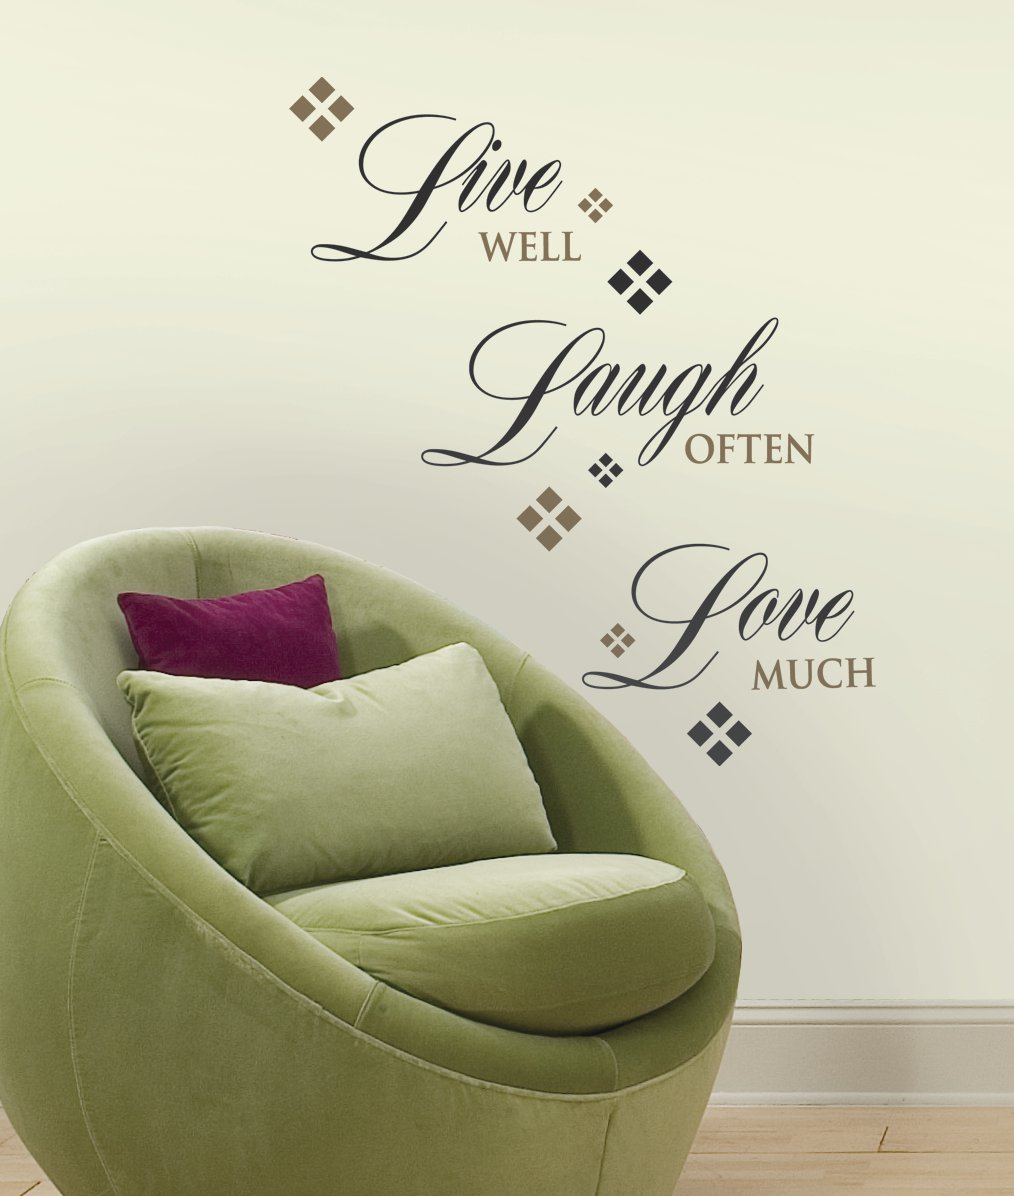 Roommates rmk1396scs live love laugh peel stick wall decals roommates rmk1396scs live love laugh peel stick wall decals 22 count decorative wall appliques amazon amipublicfo Choice Image